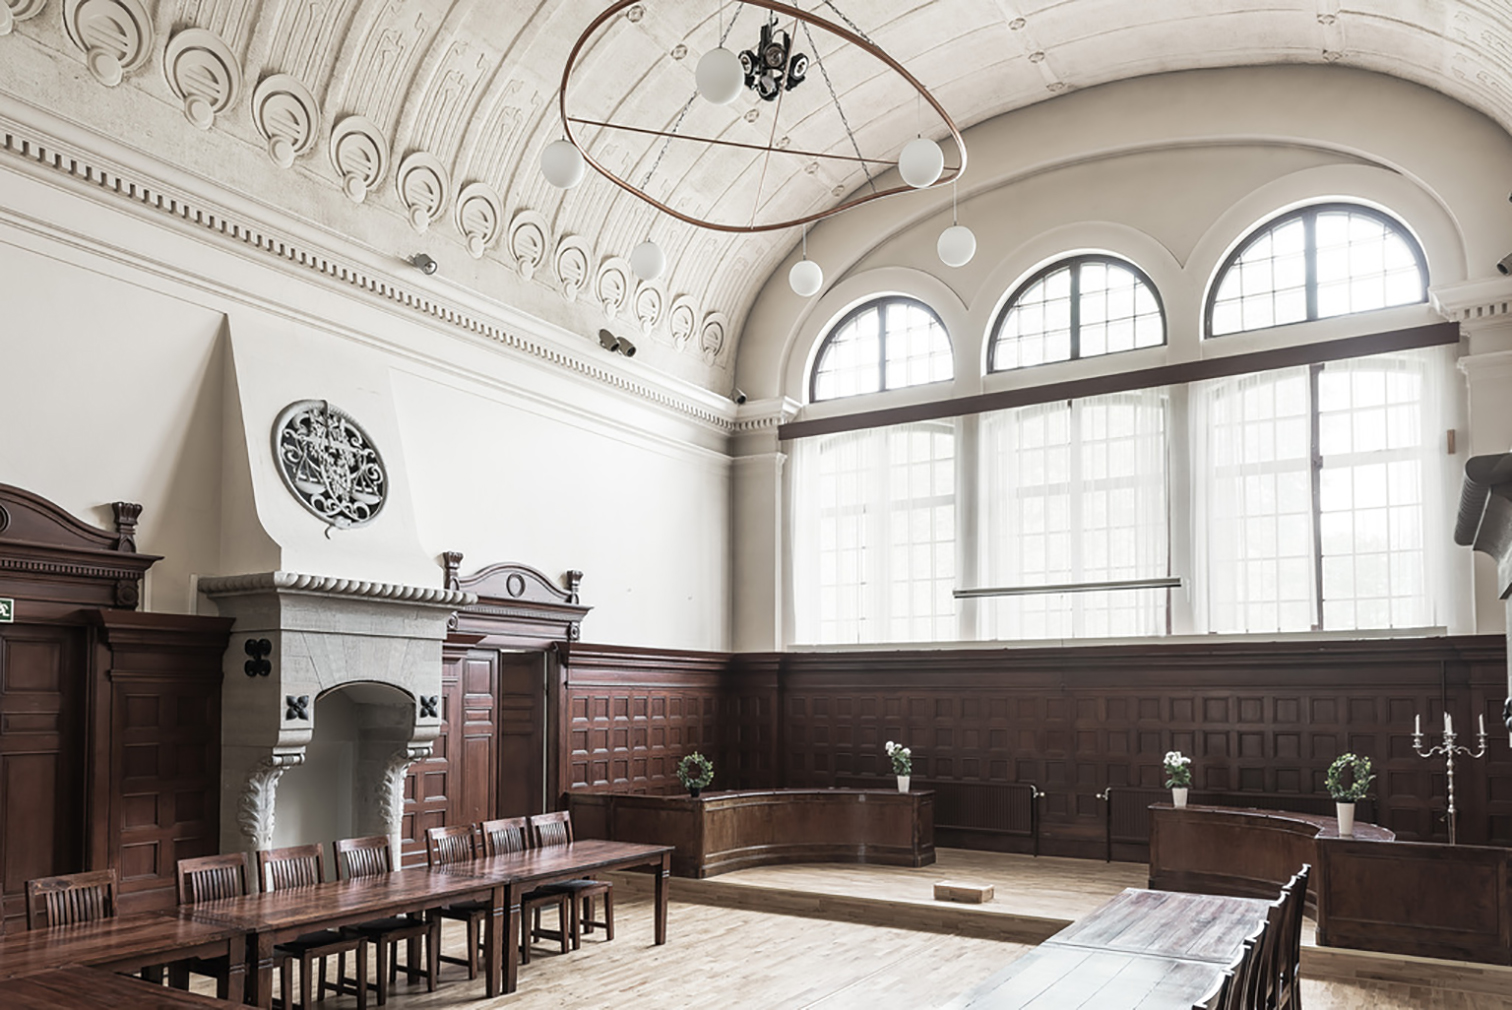 Stationsgatan 41 converted courthouse for sale in Sweden